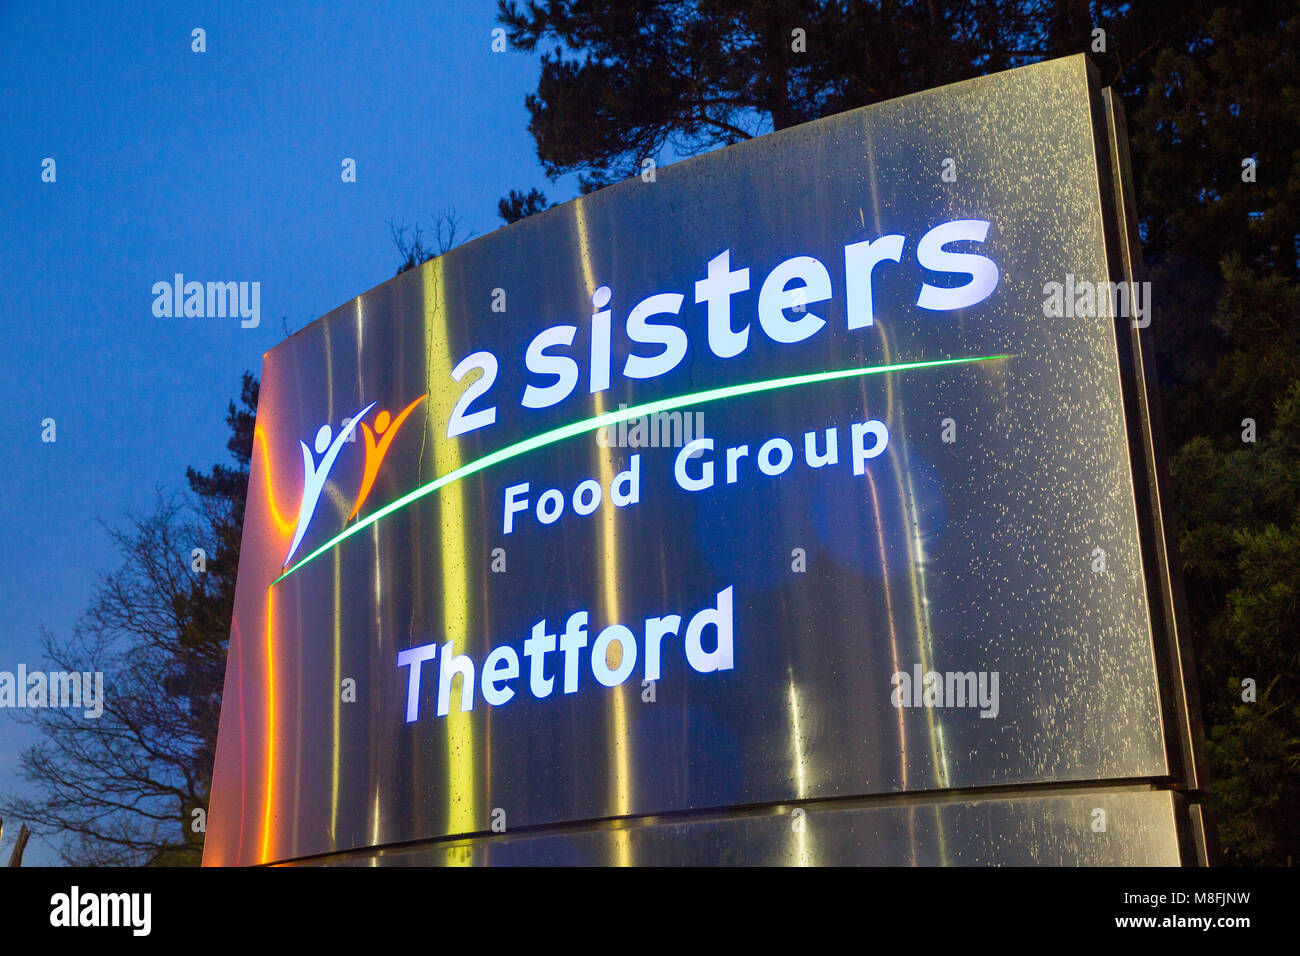 The 2 Sisters Food Group Factory In Thetford Norfolk UK Produces